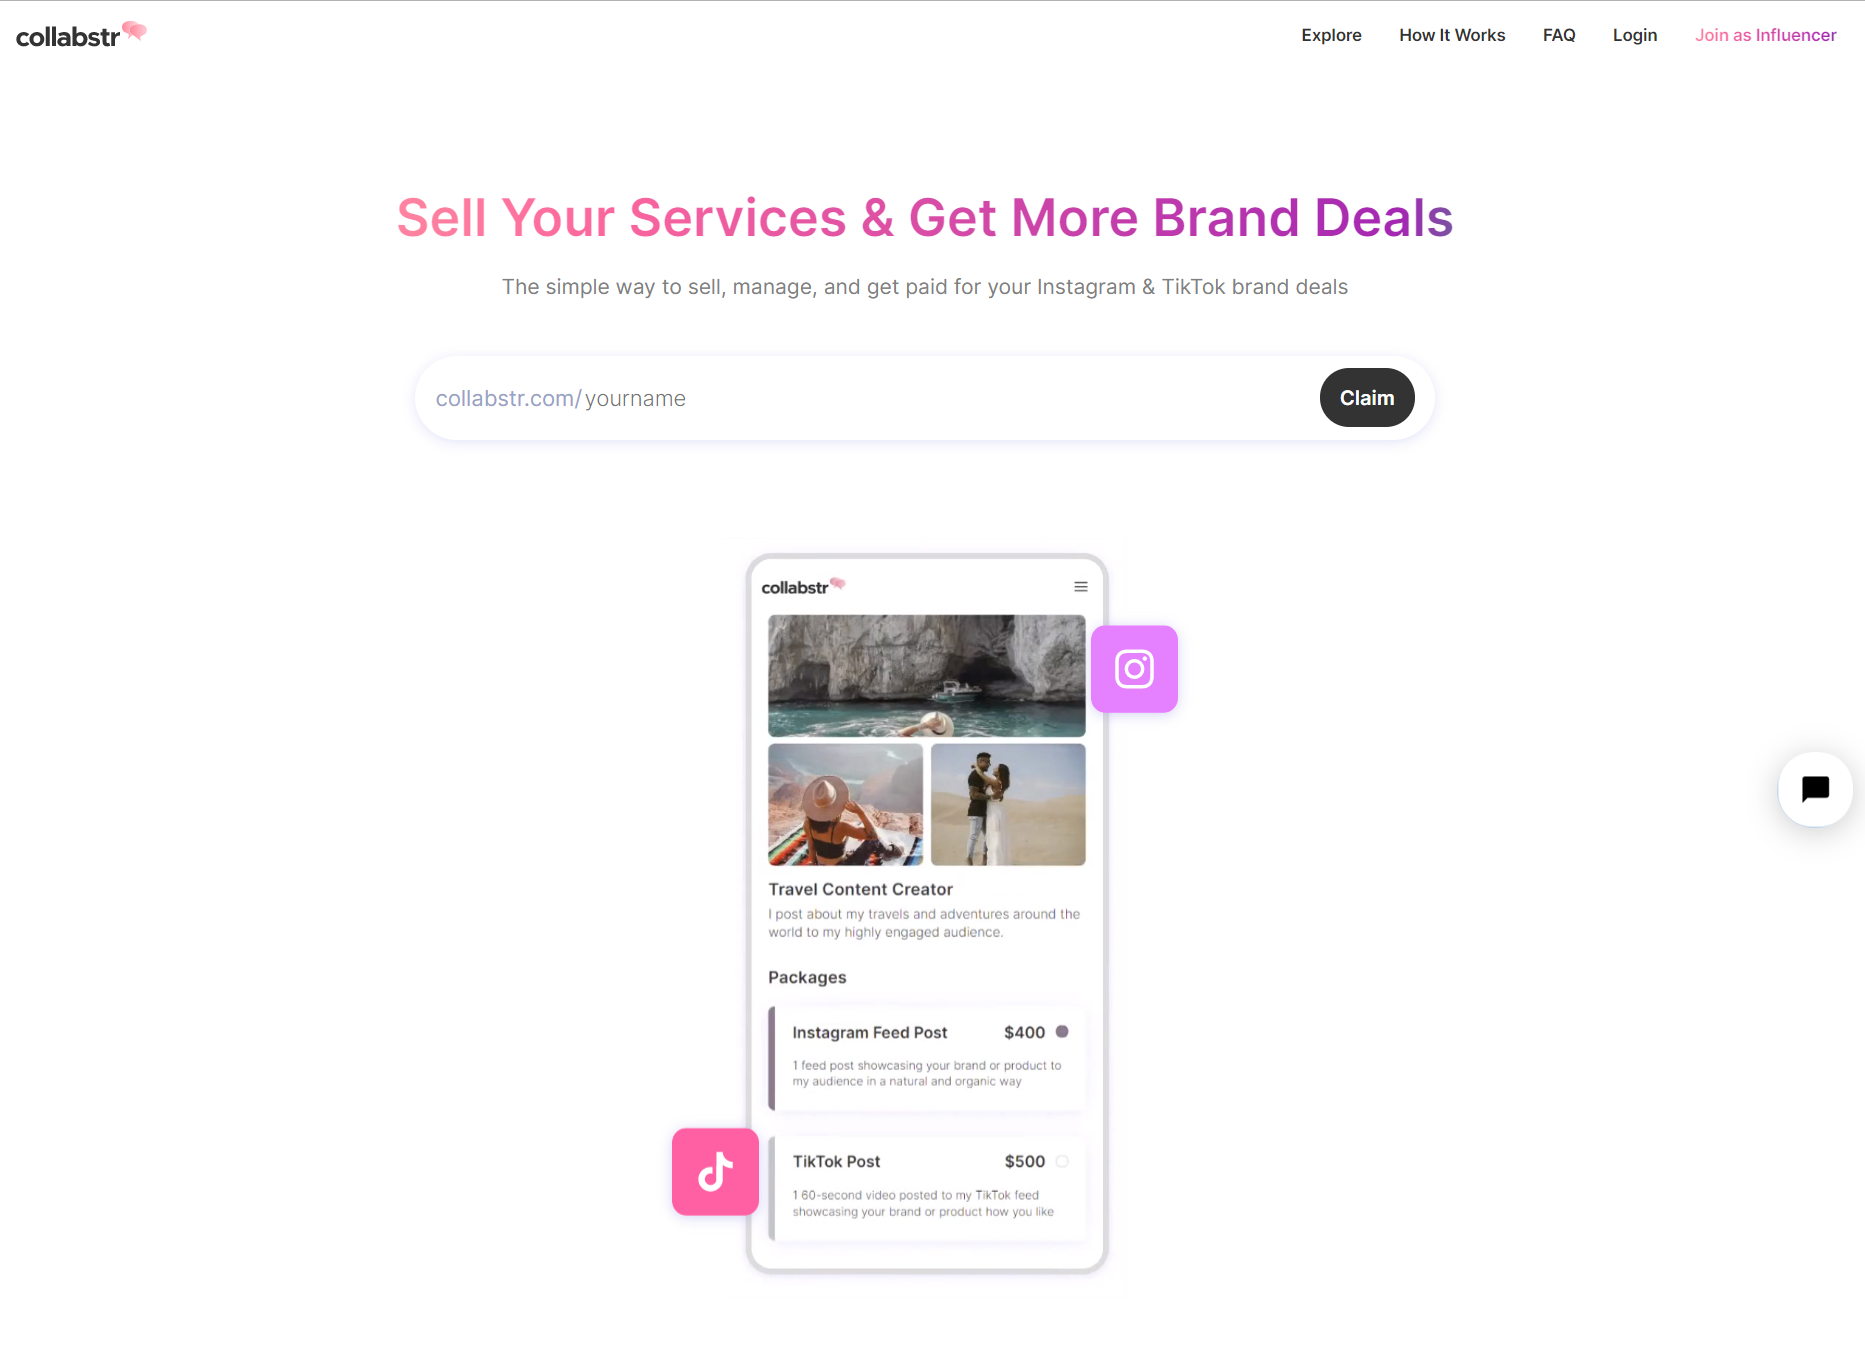 Collabstr-Sell-Your-Services-Get-More-Brand-Deals